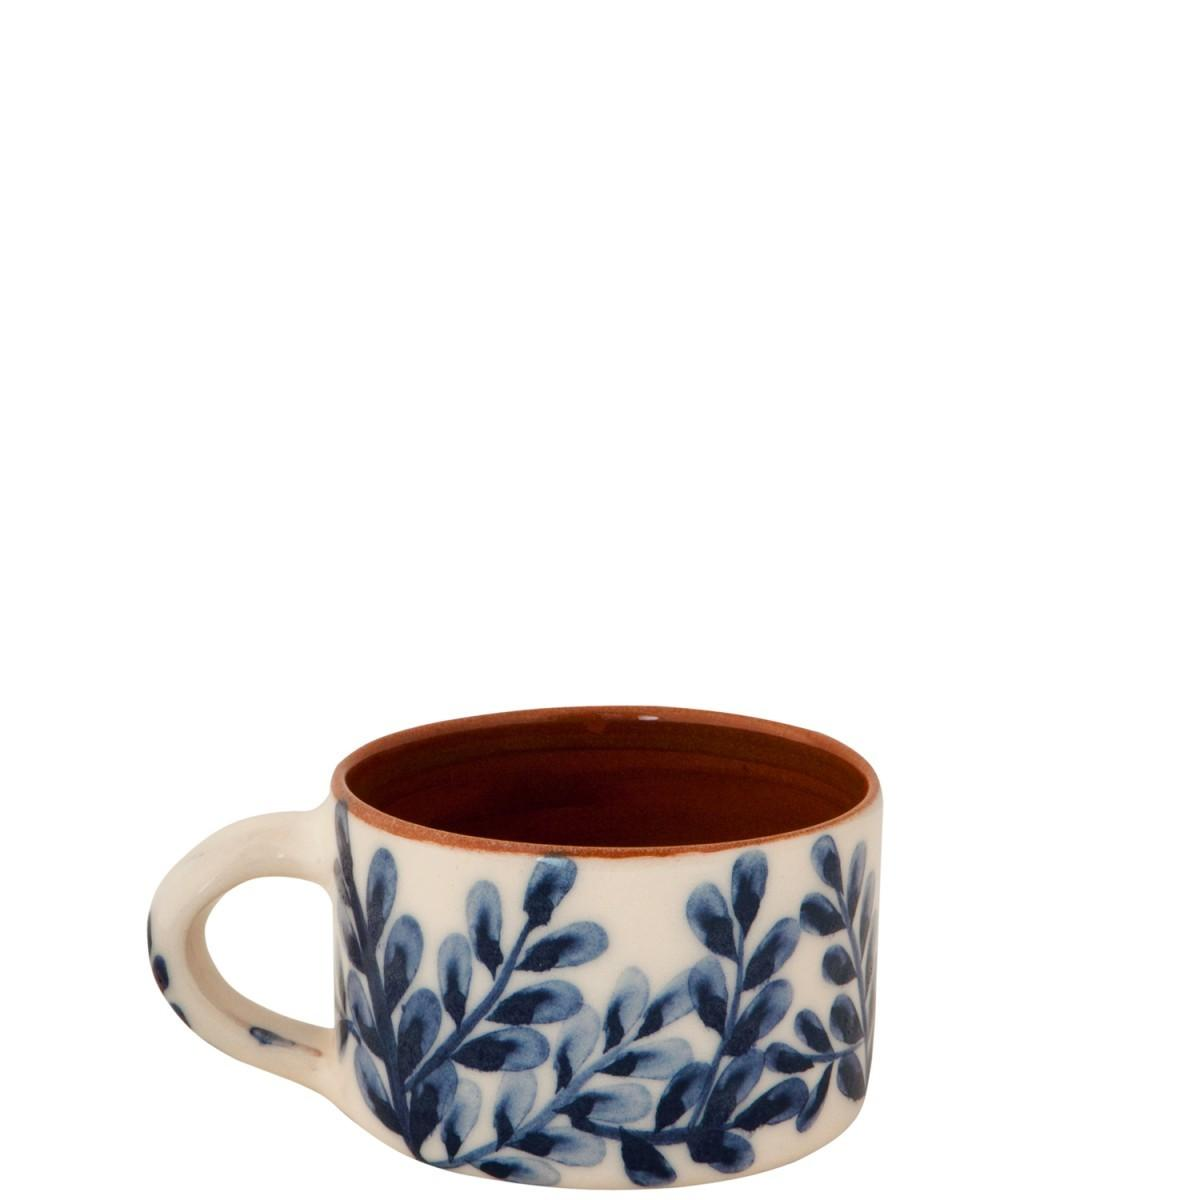 Handmade Pottery Coffee Mugs Blue White Flowers